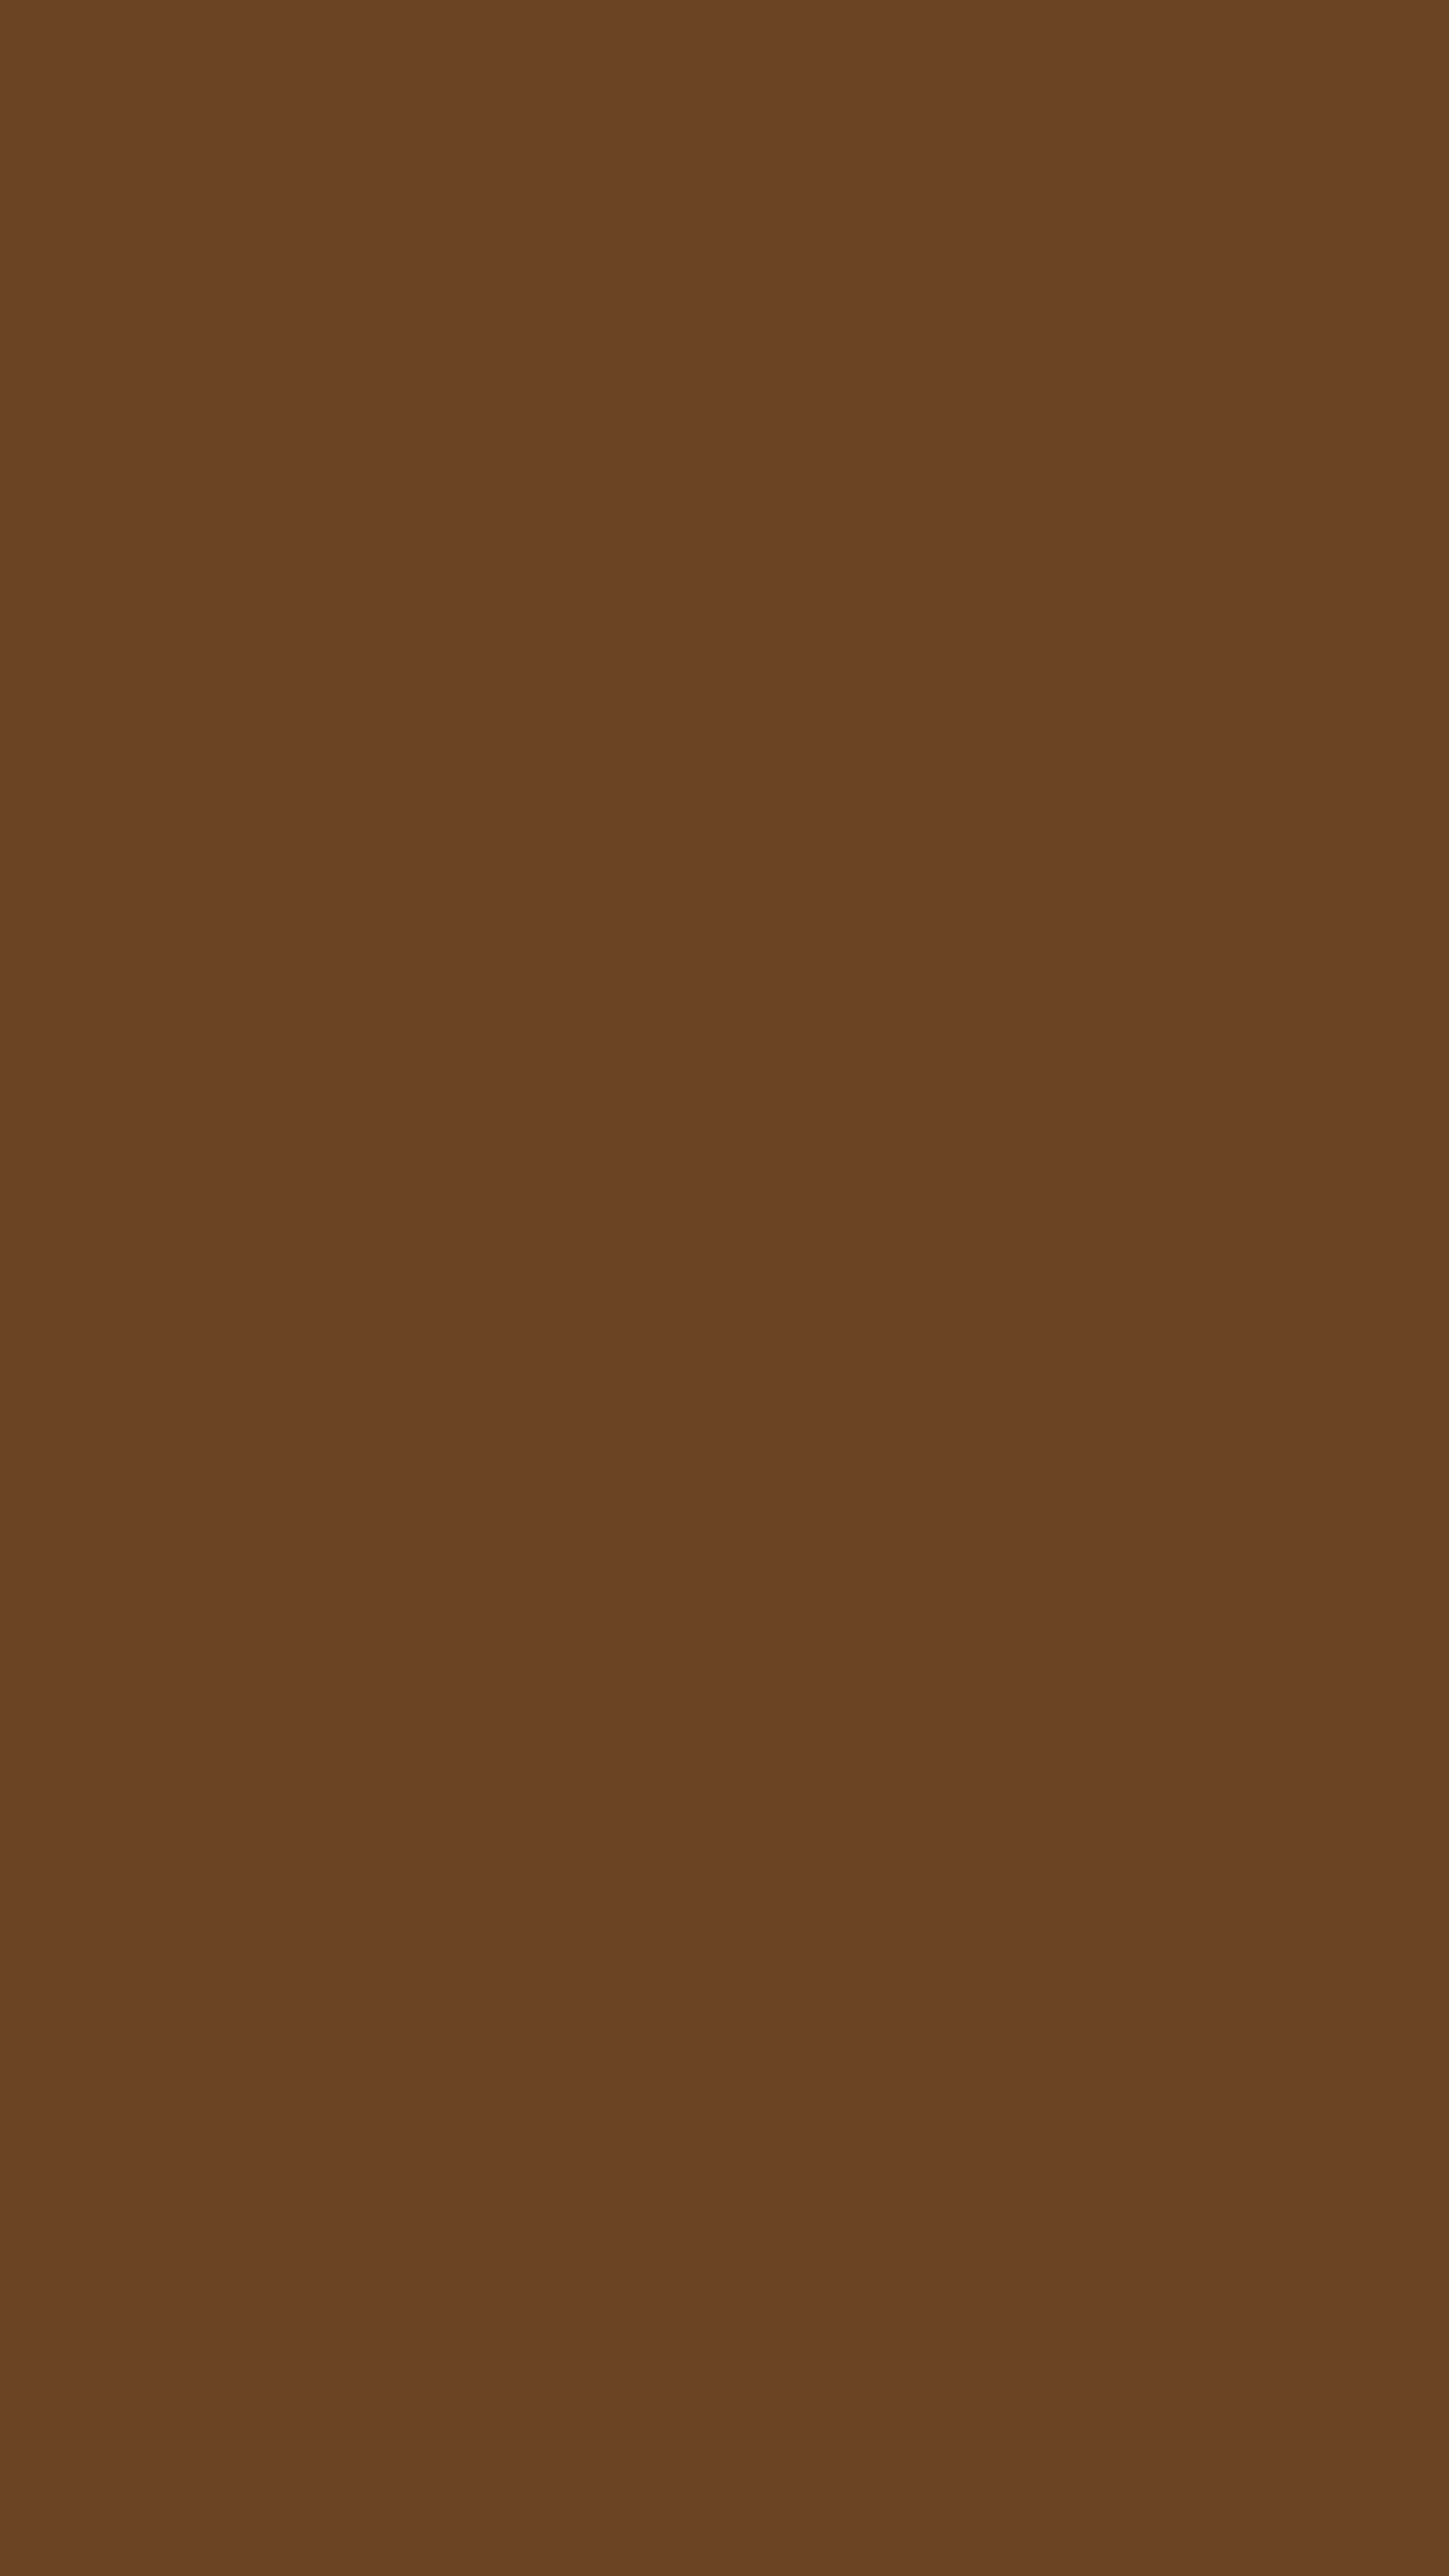 Brown Wallpaper Png - Brown Nose Solid Color Background Wallpaper for Mobile Phone